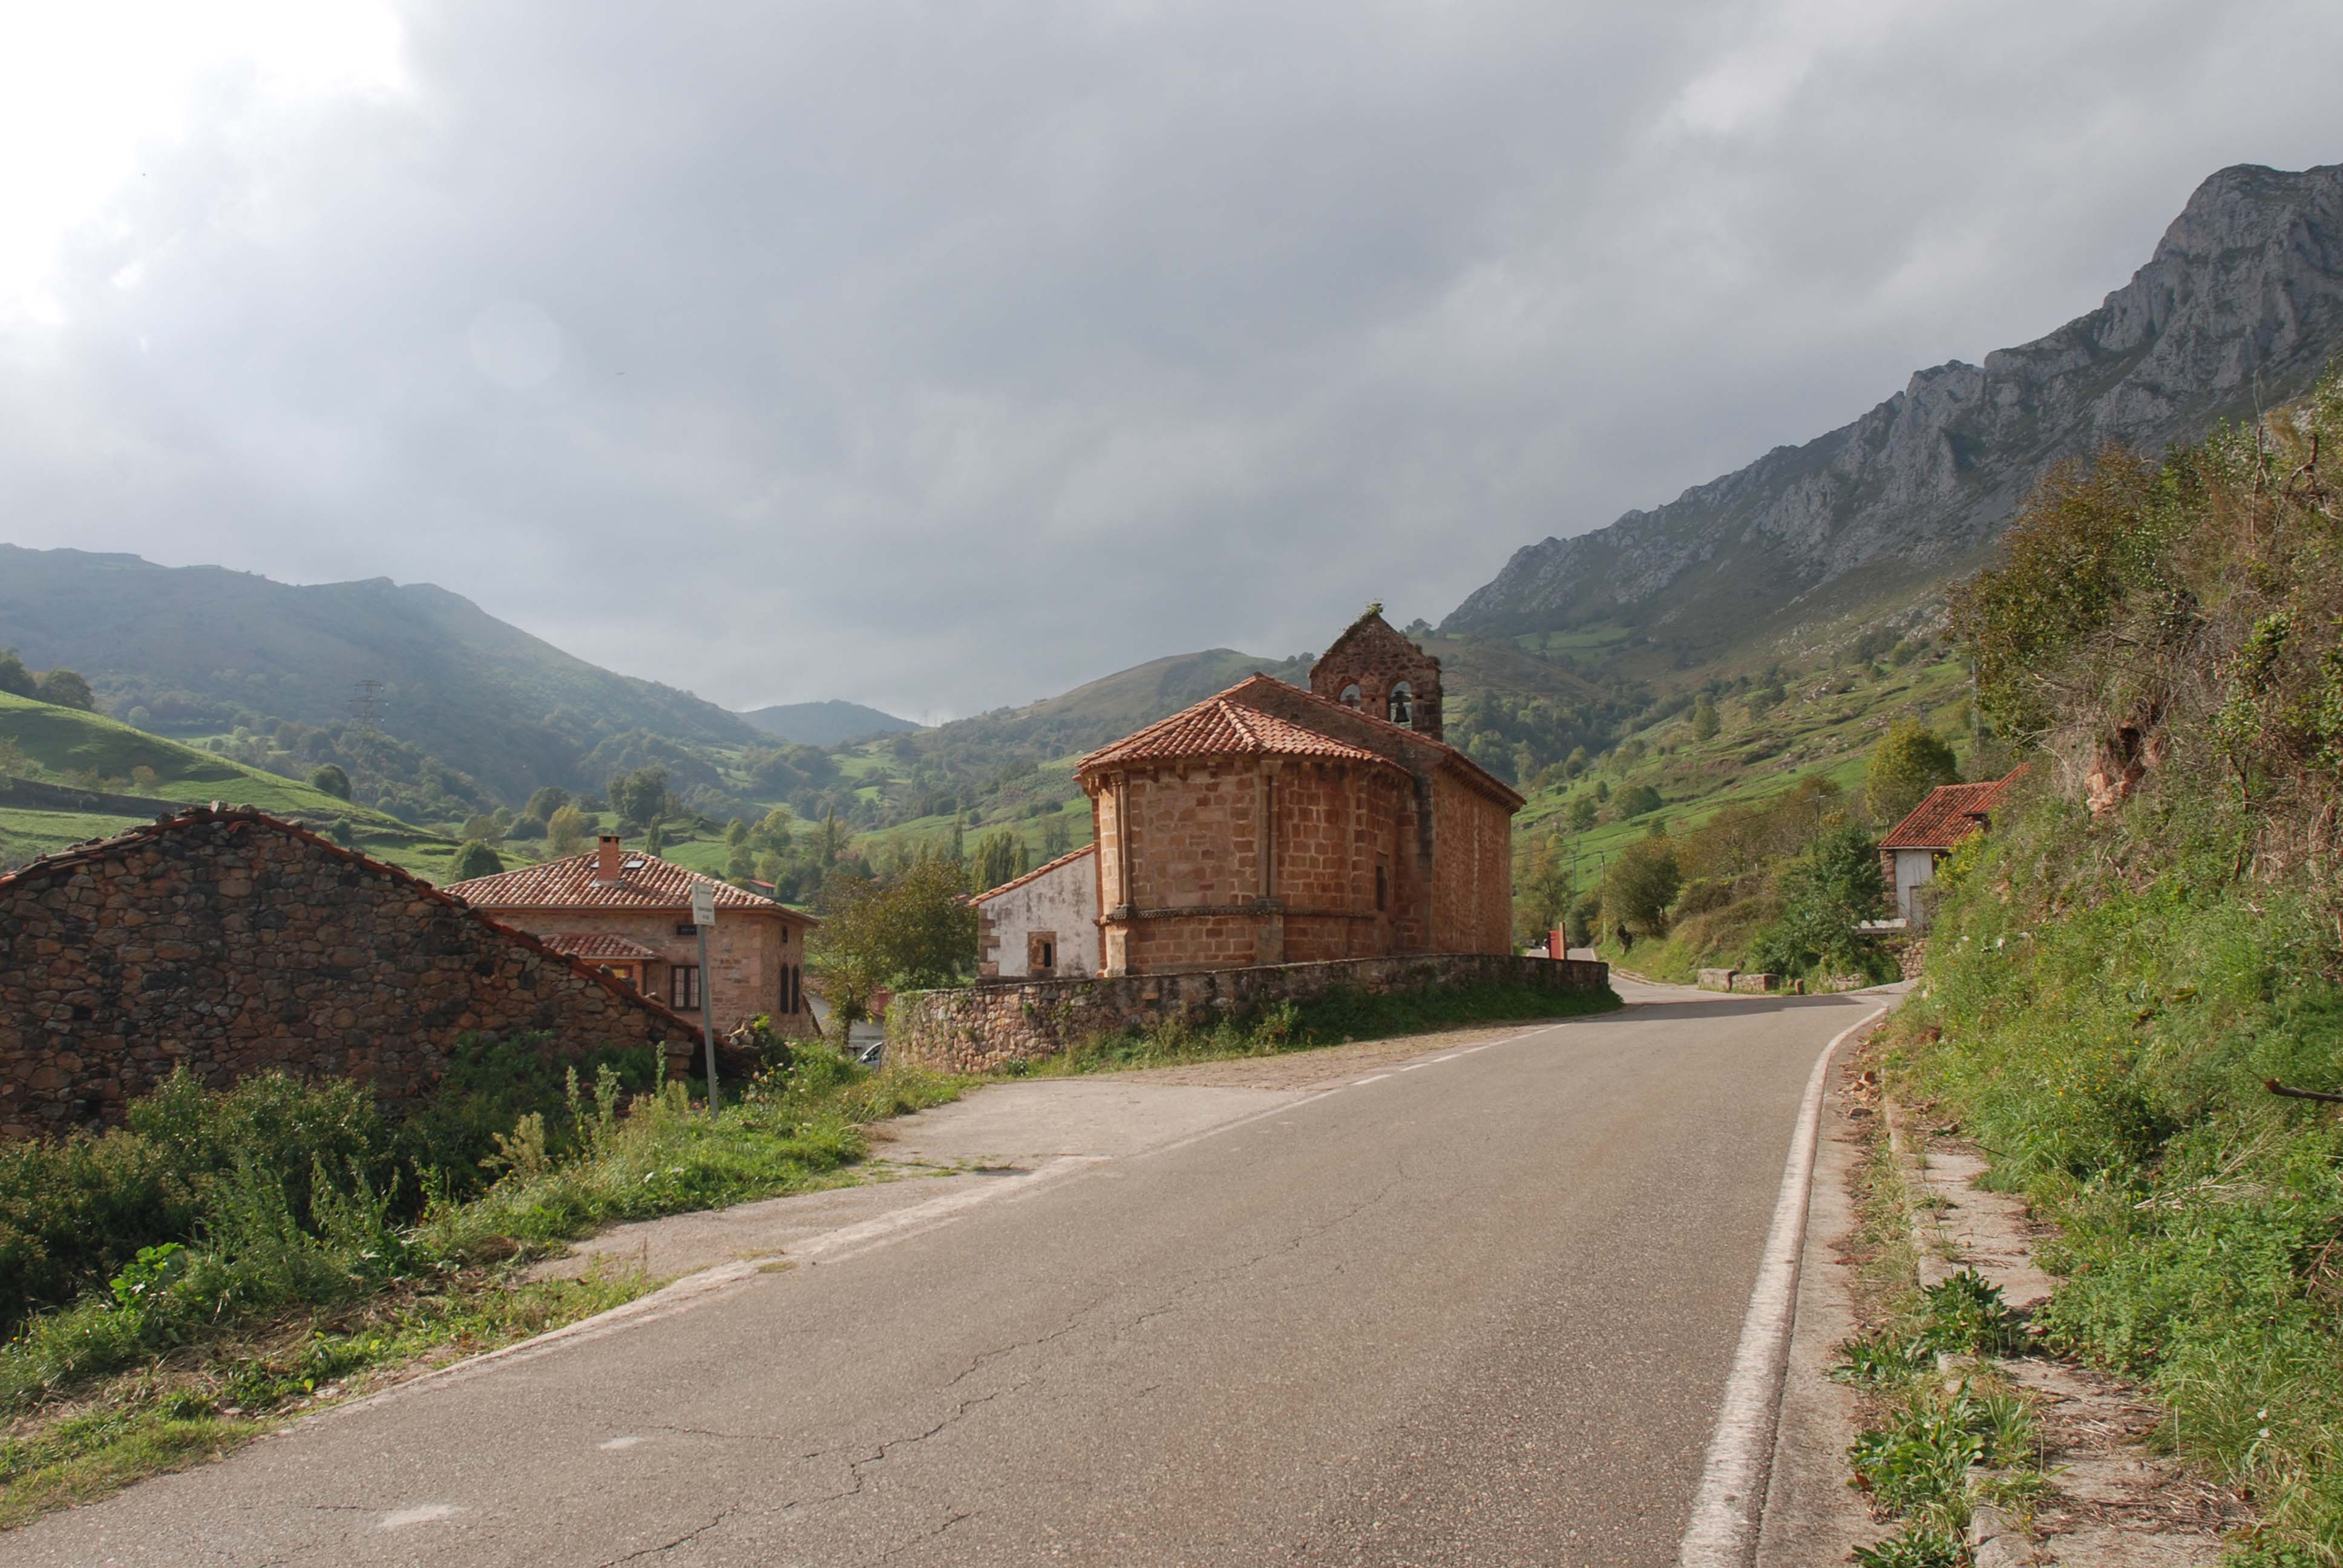 Cycling in the Picos de Europa